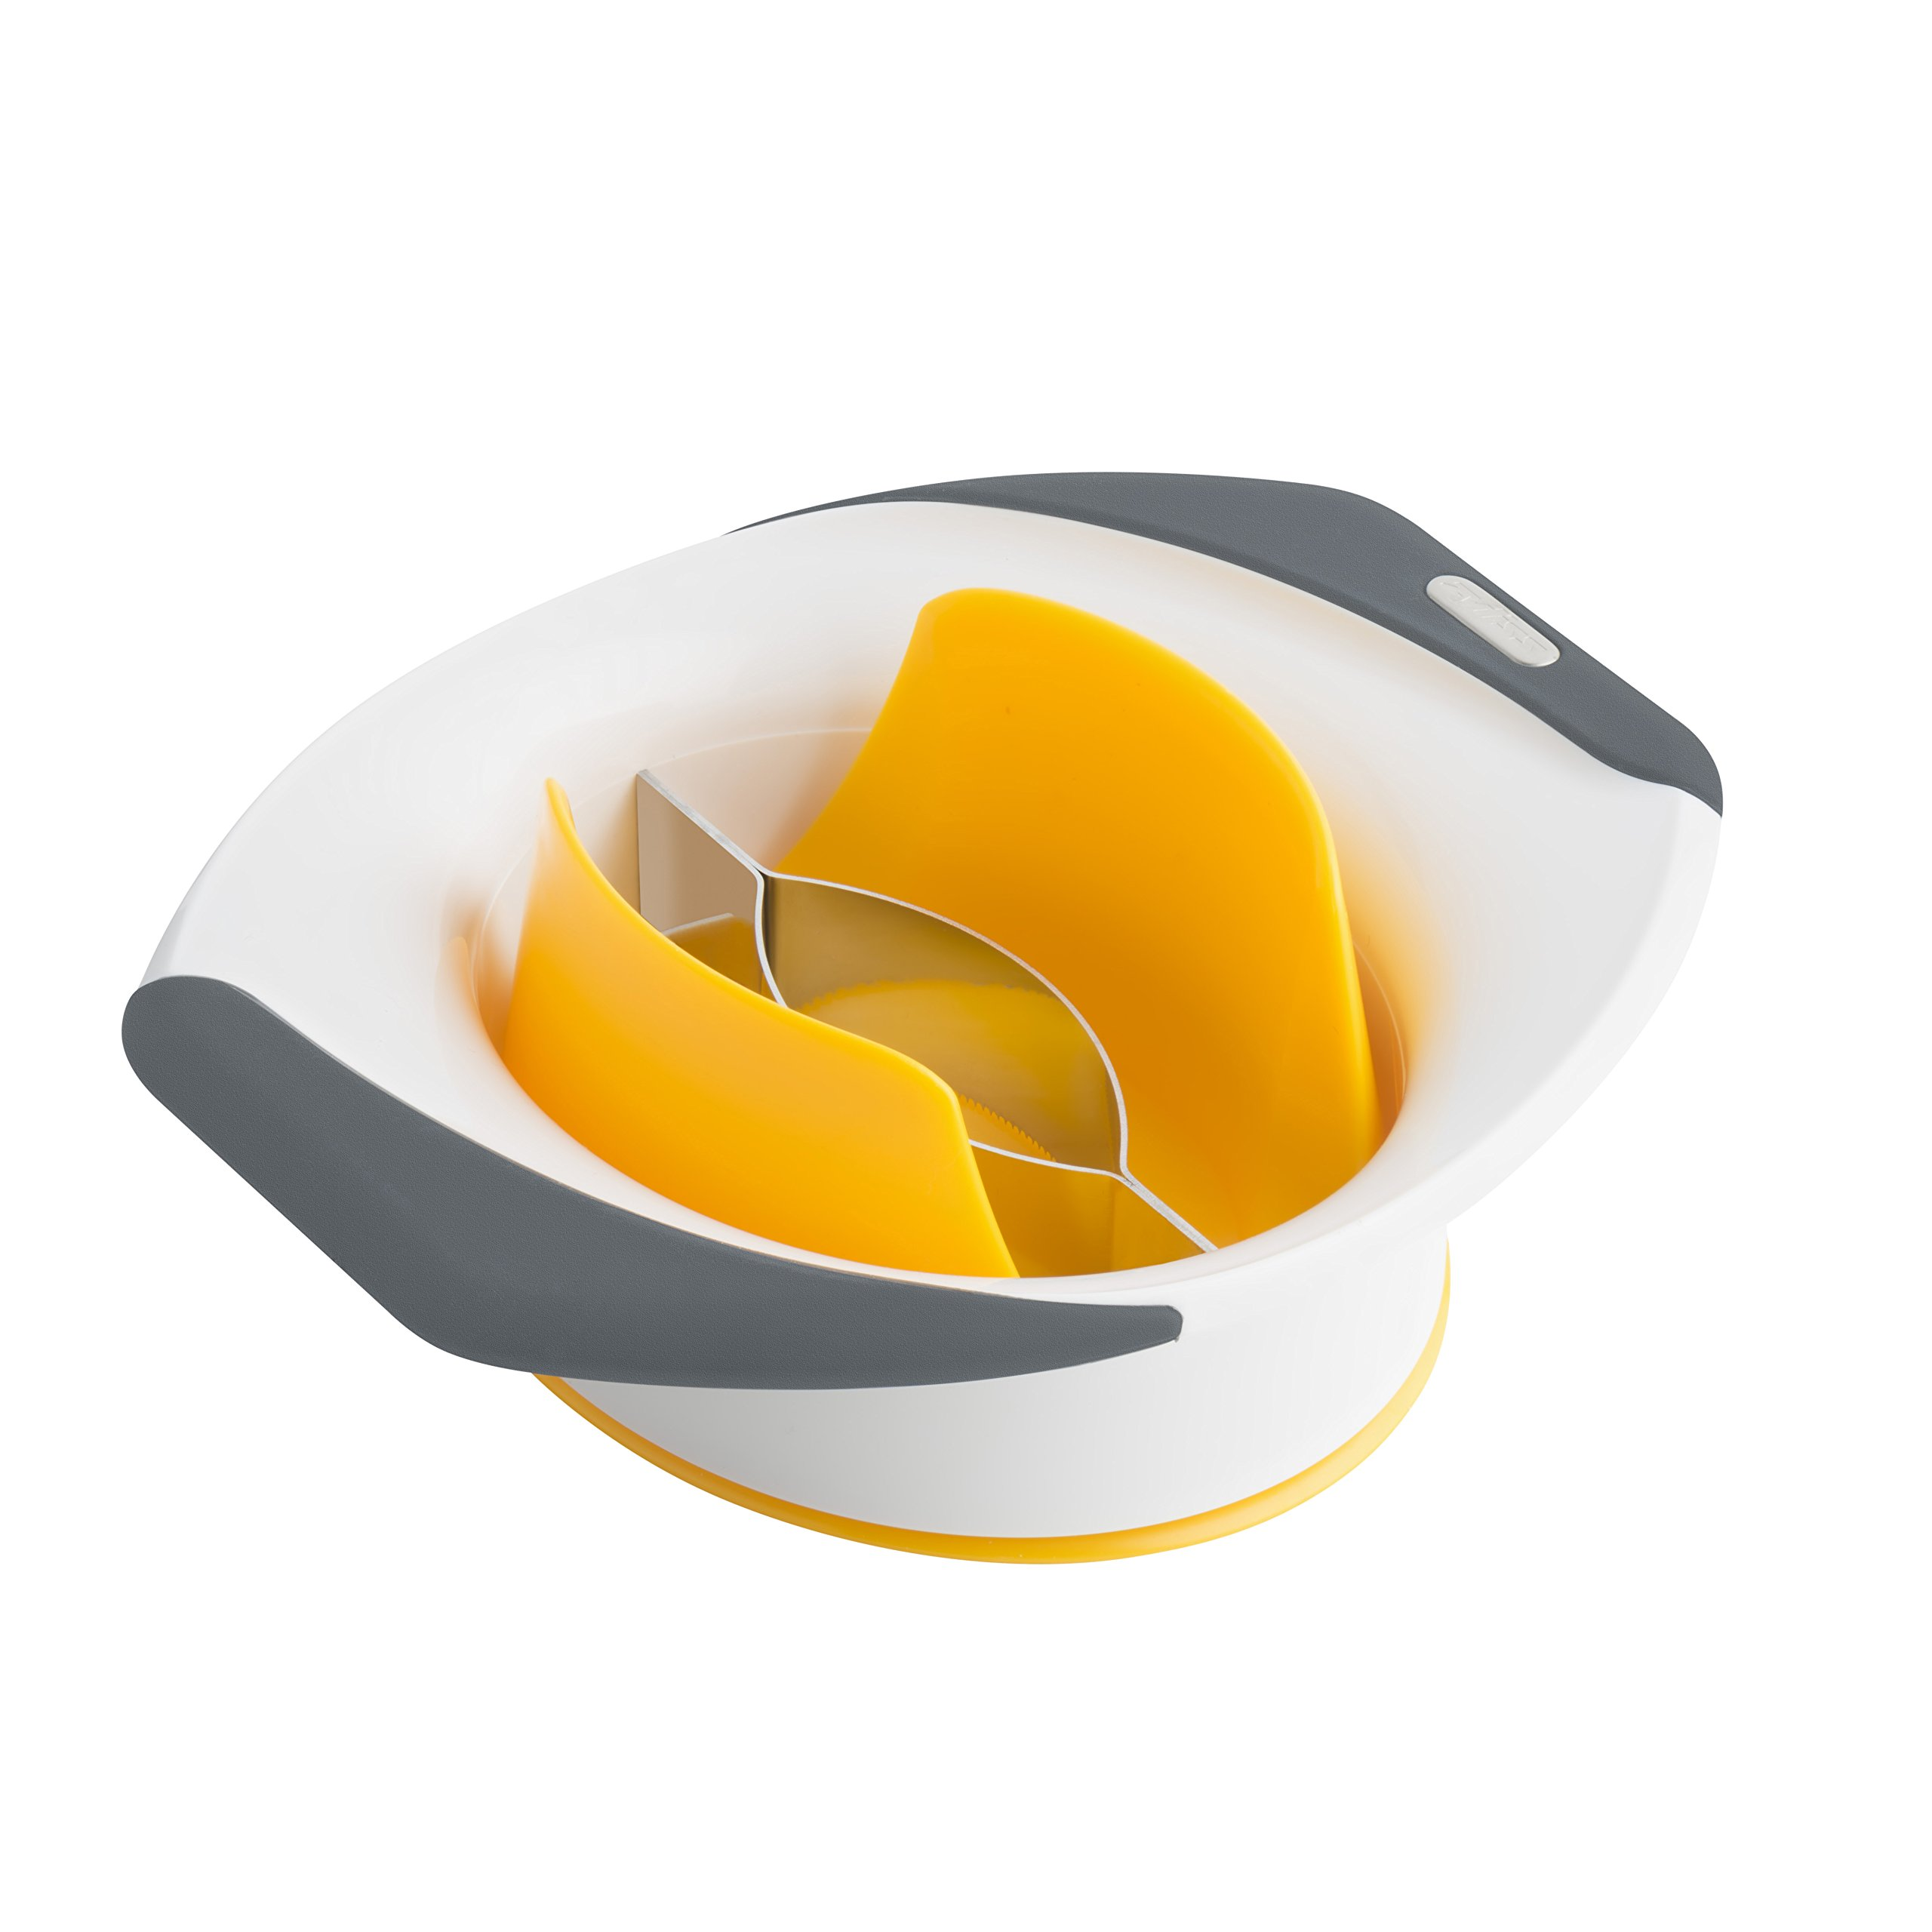 ZYLISS 3-in-1 Mango Slicer, Peeler and Pit Remover Tool by Zyliss